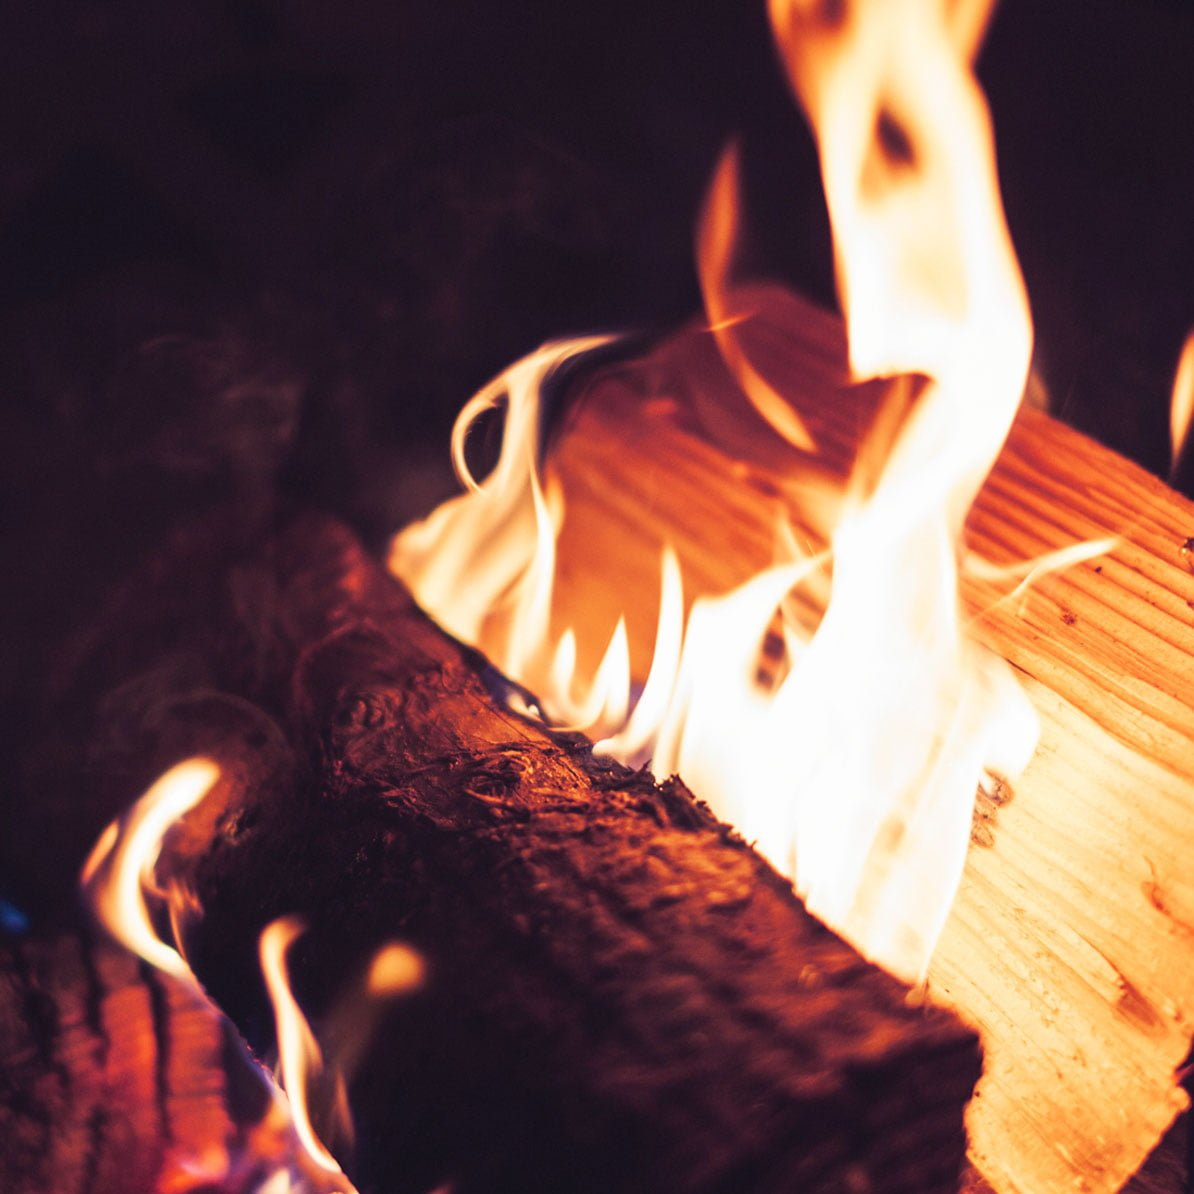 A large yellow flame lights a log